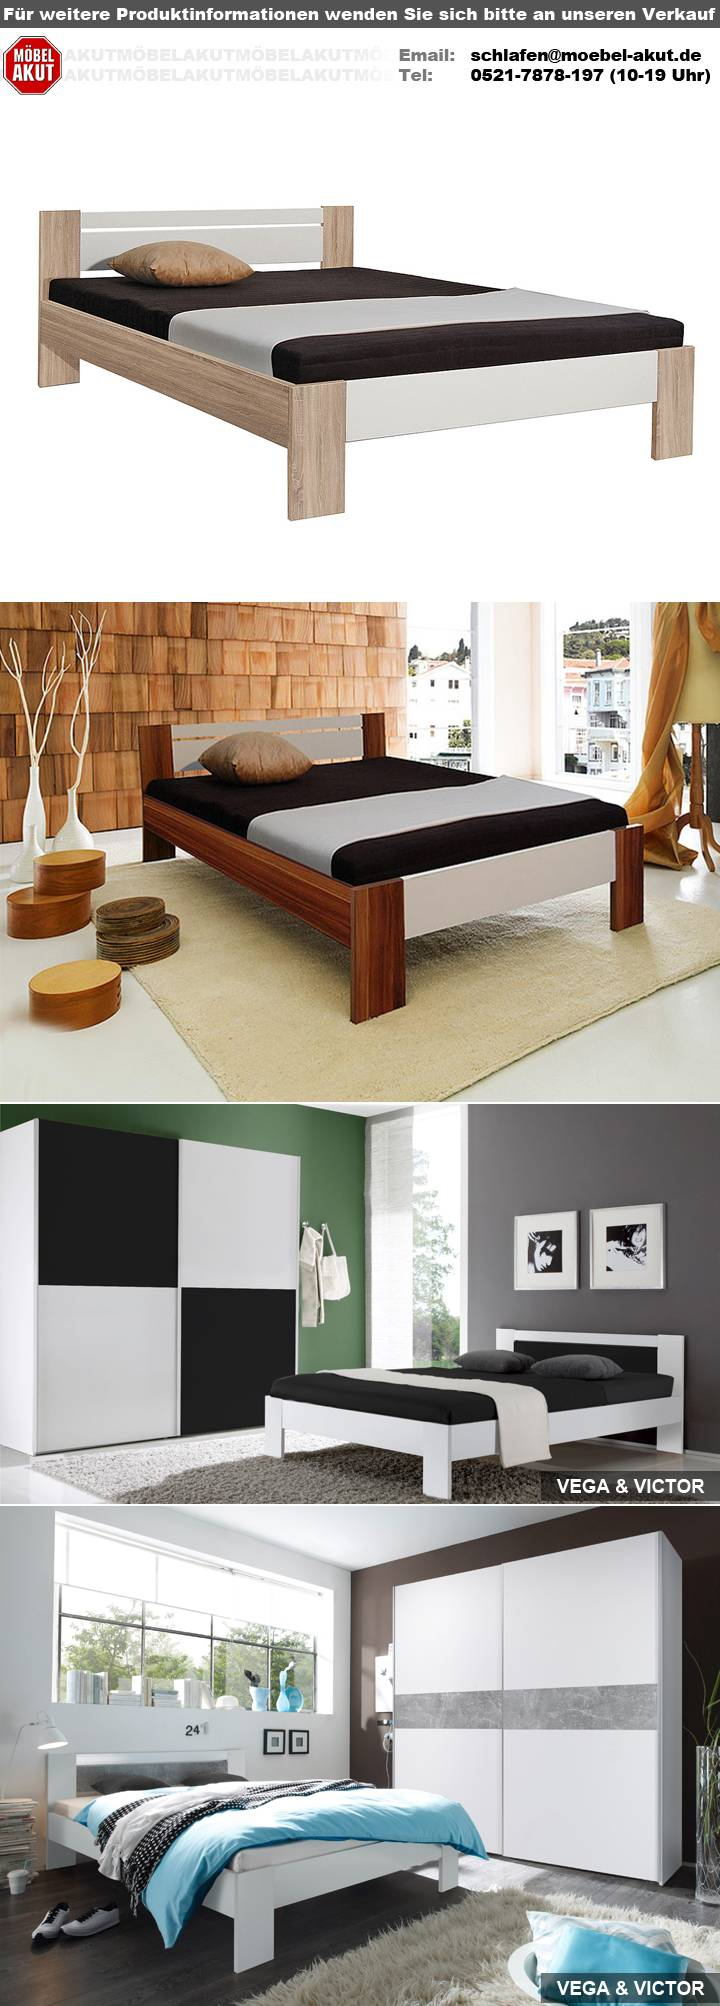 bett vega futonbett wei und beton mit rollrost und matratze 140x200. Black Bedroom Furniture Sets. Home Design Ideas